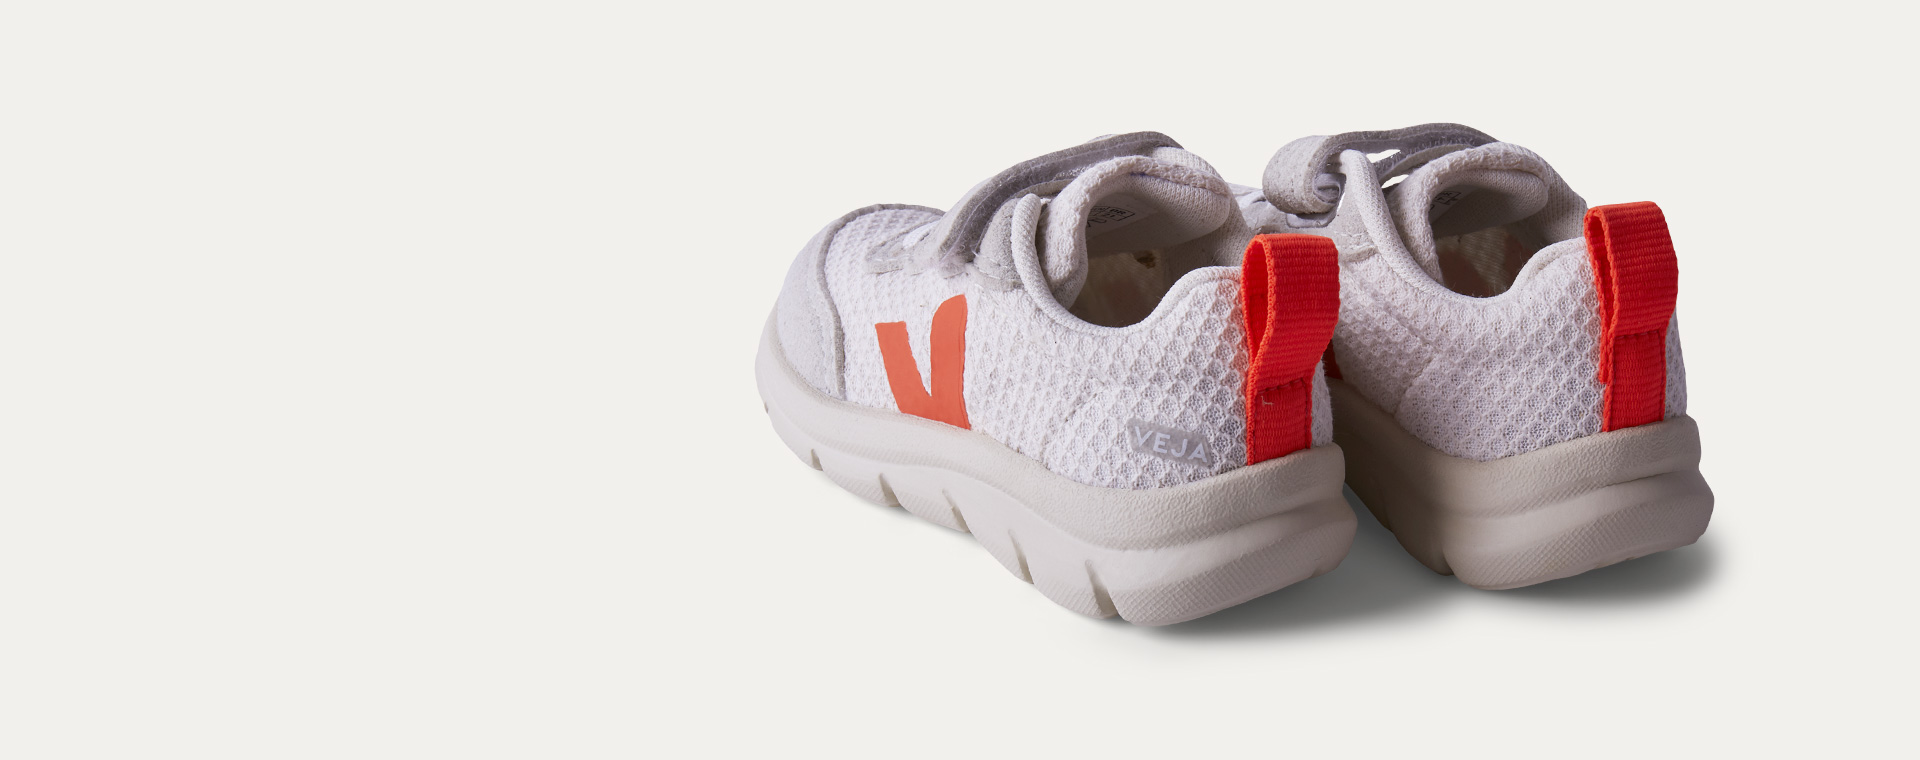 Gravel Orange Veja Vegan B-mesh Trainer